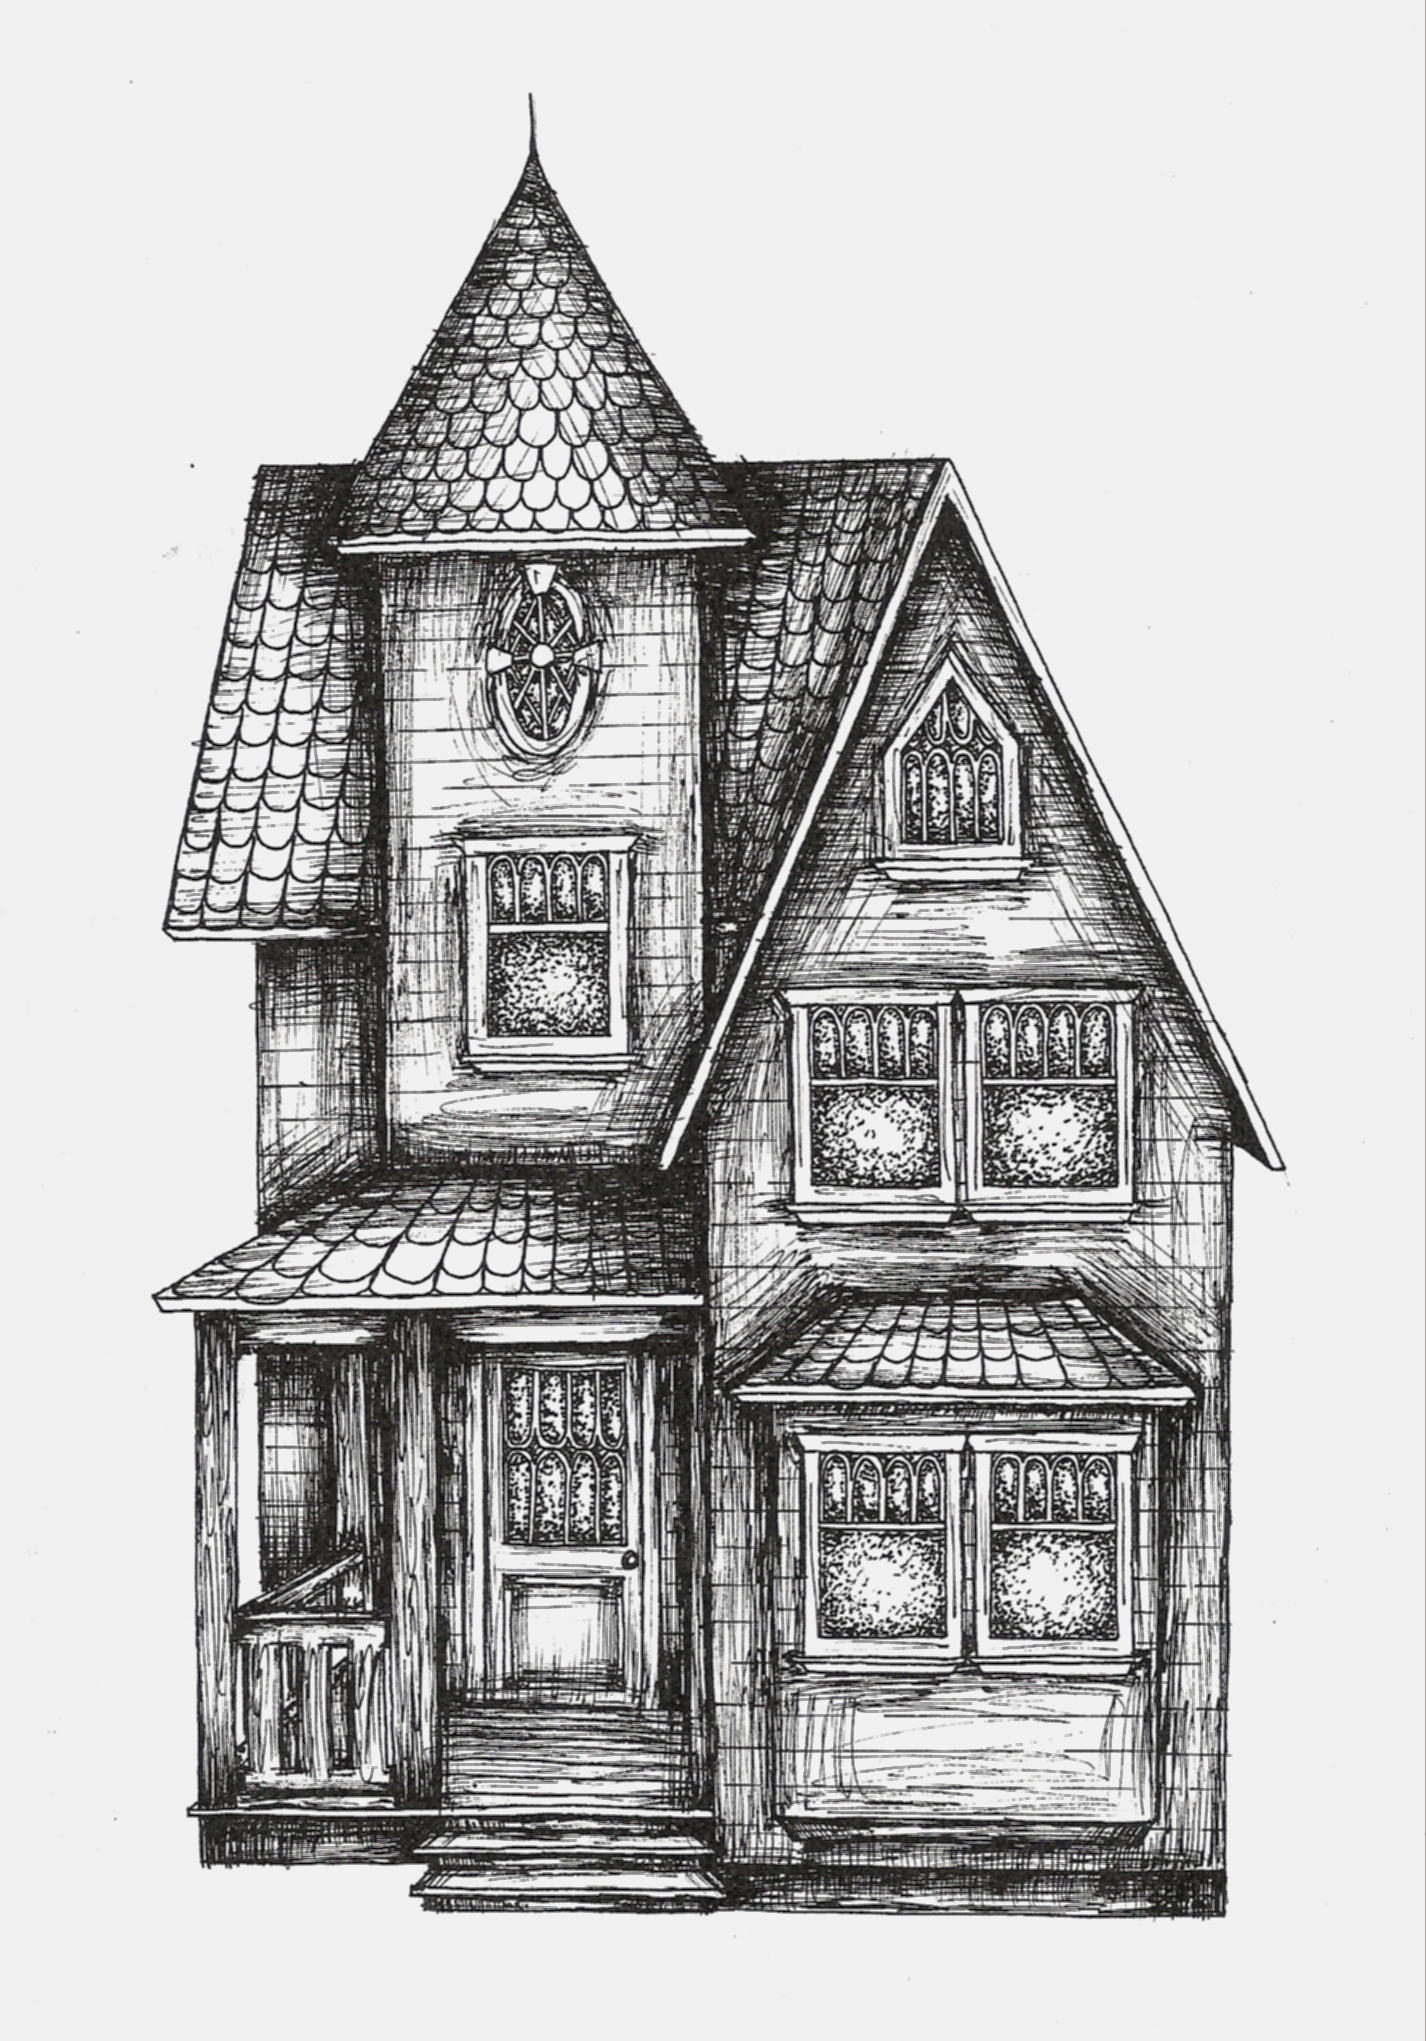 Inside House Drawing: Victorian House By Sarah3318 On DeviantArt